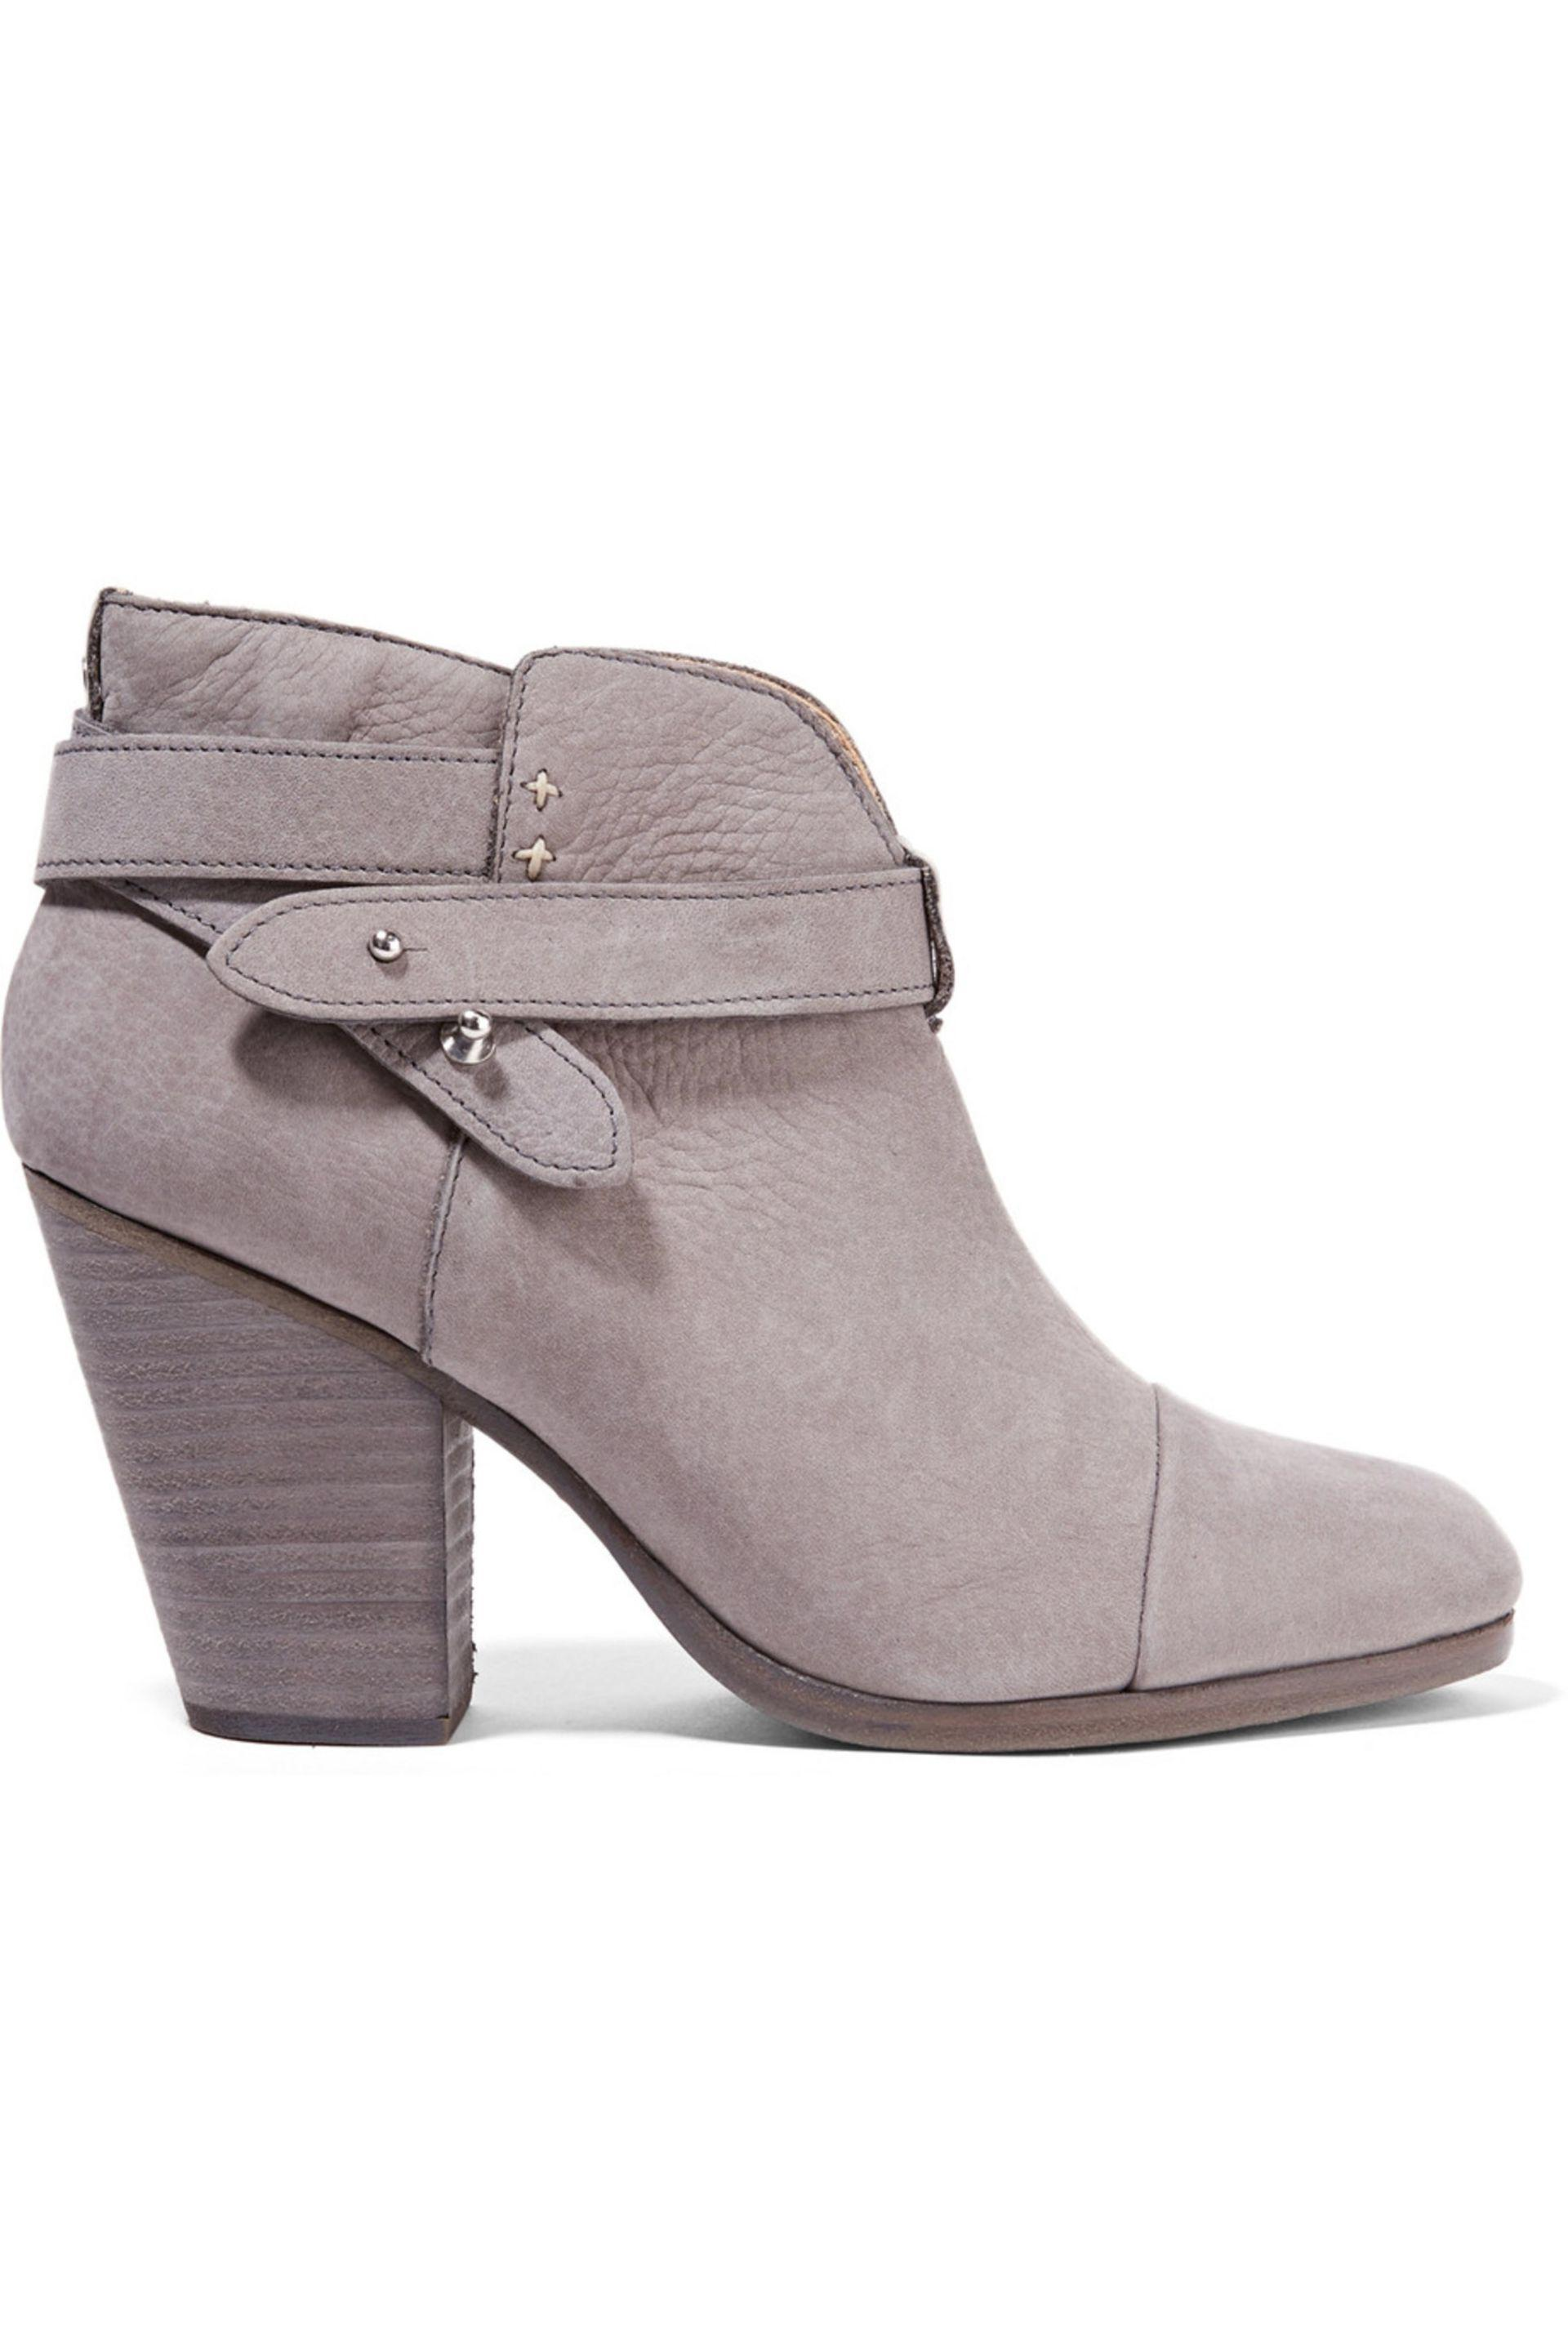 Rag & Bone. Women's Harrow Nubuck Ankle Boots